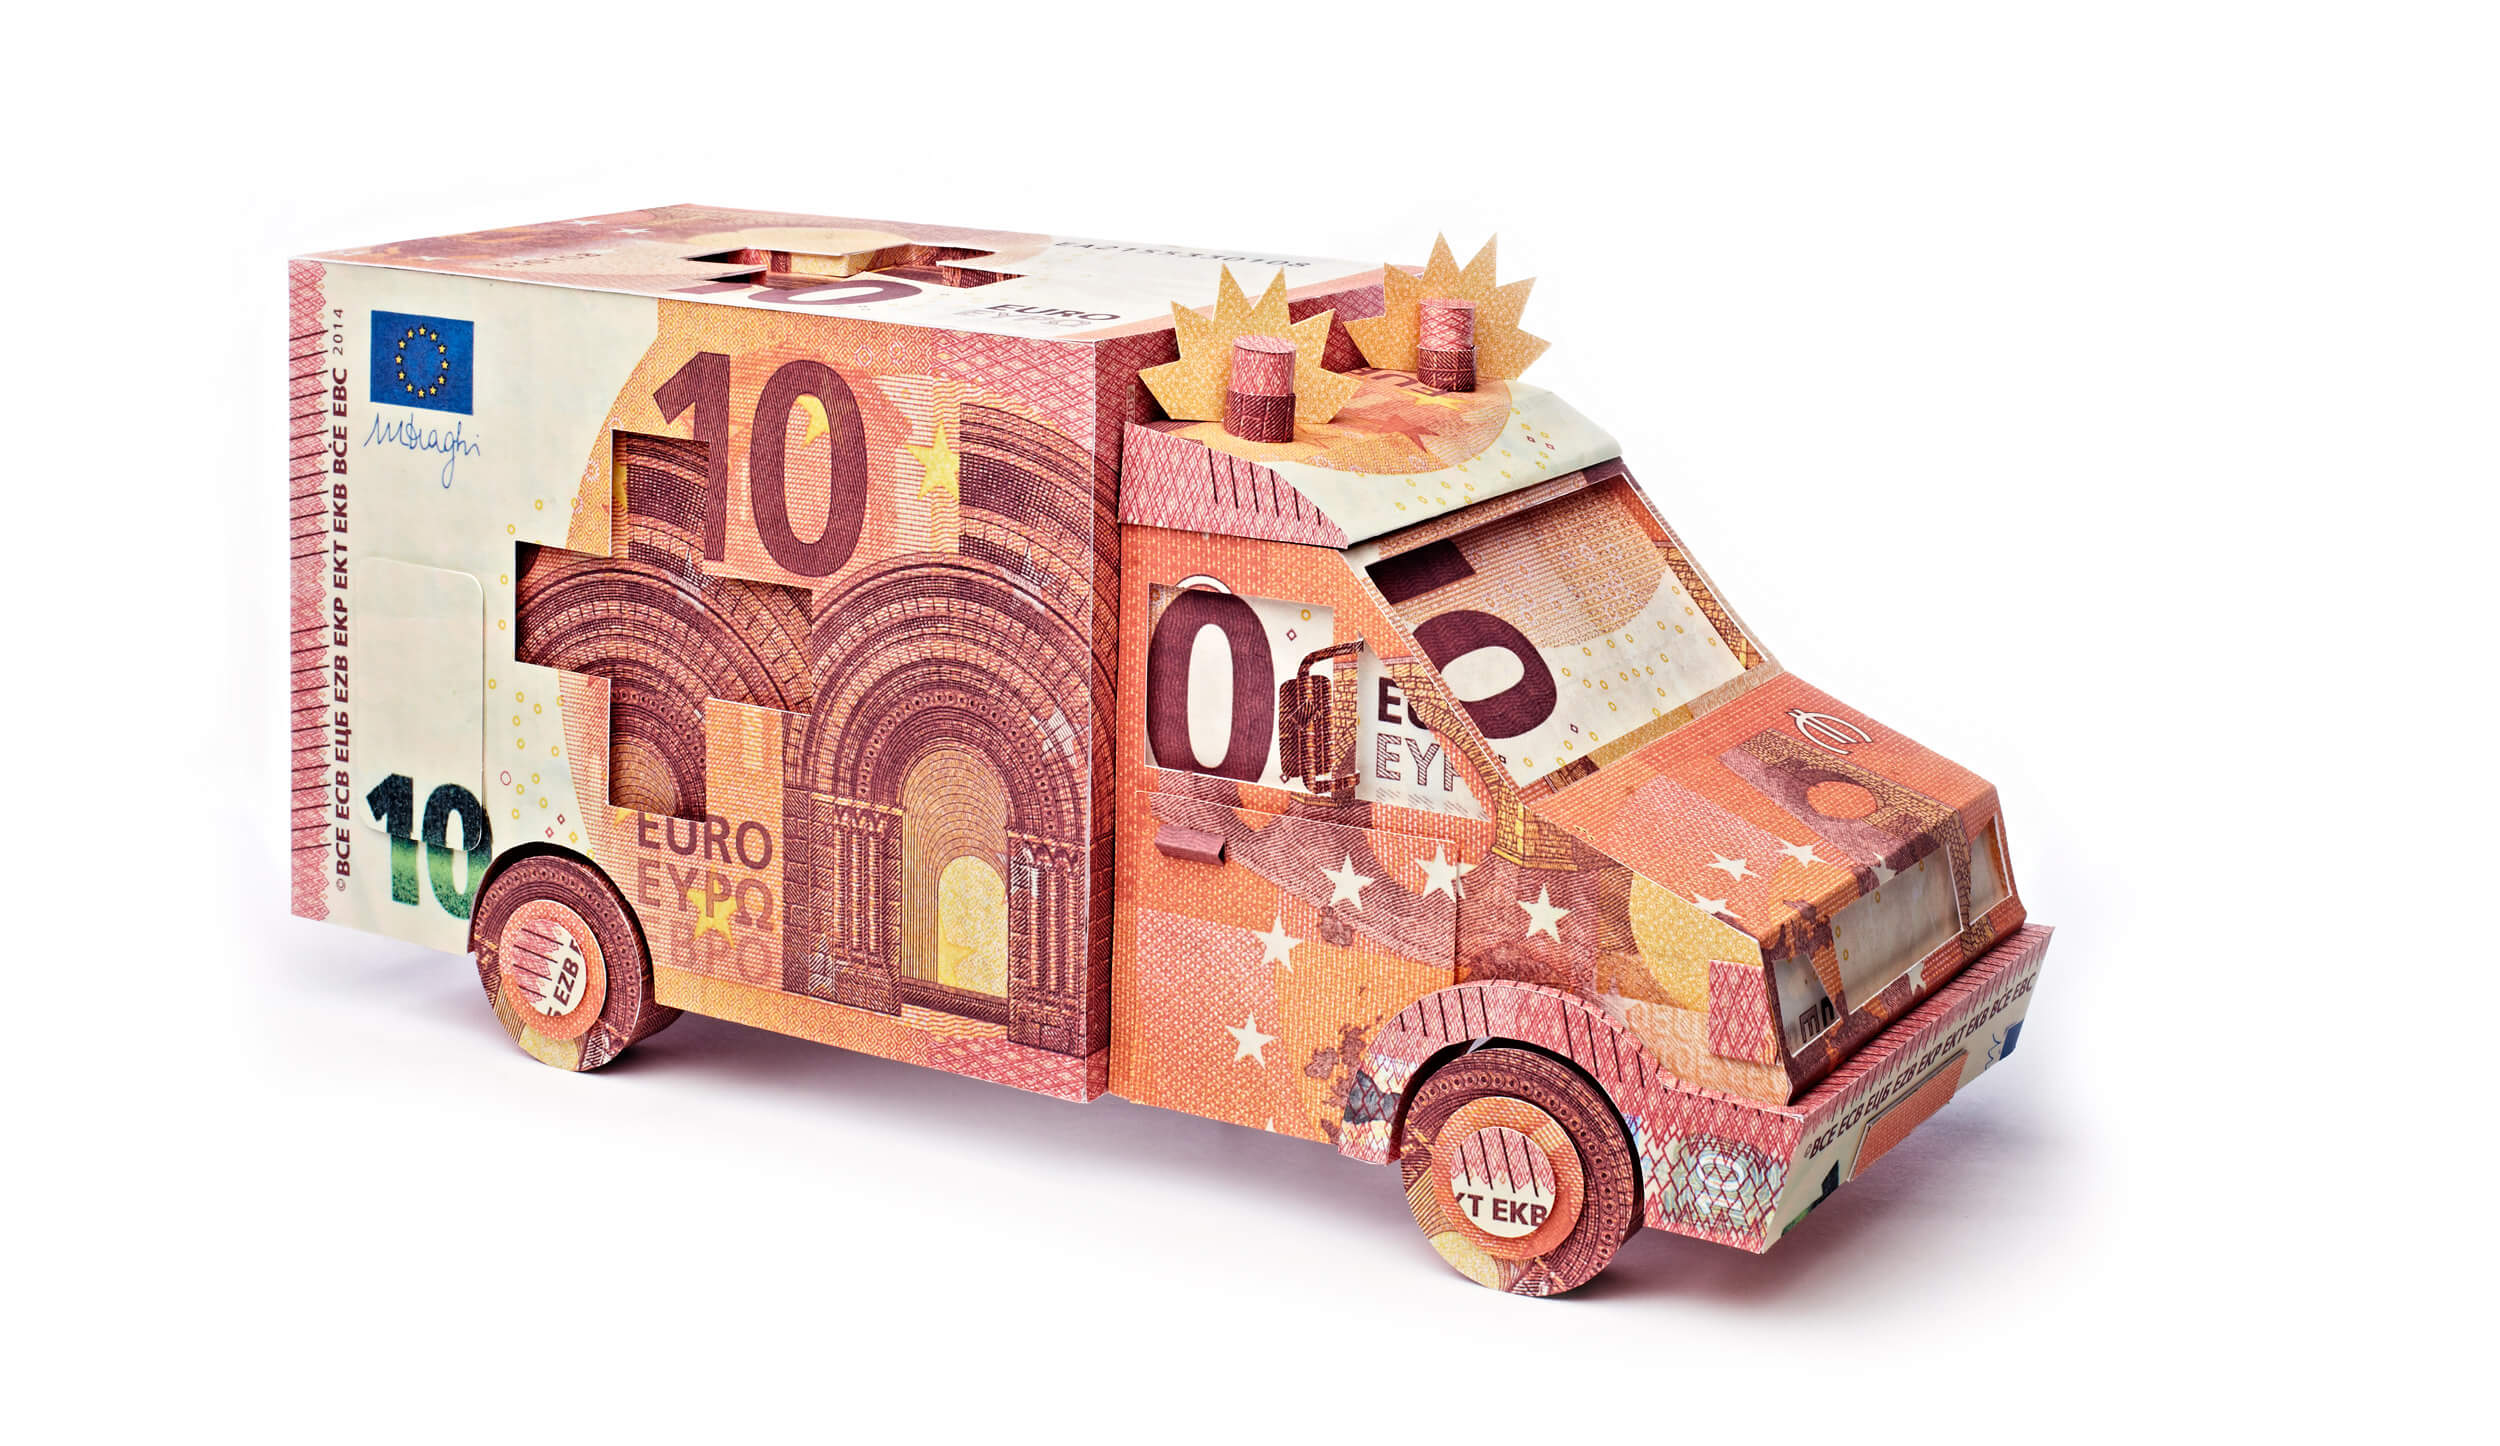 ambulance_moneyart_greenpeace_katrinrodegast_web (1)